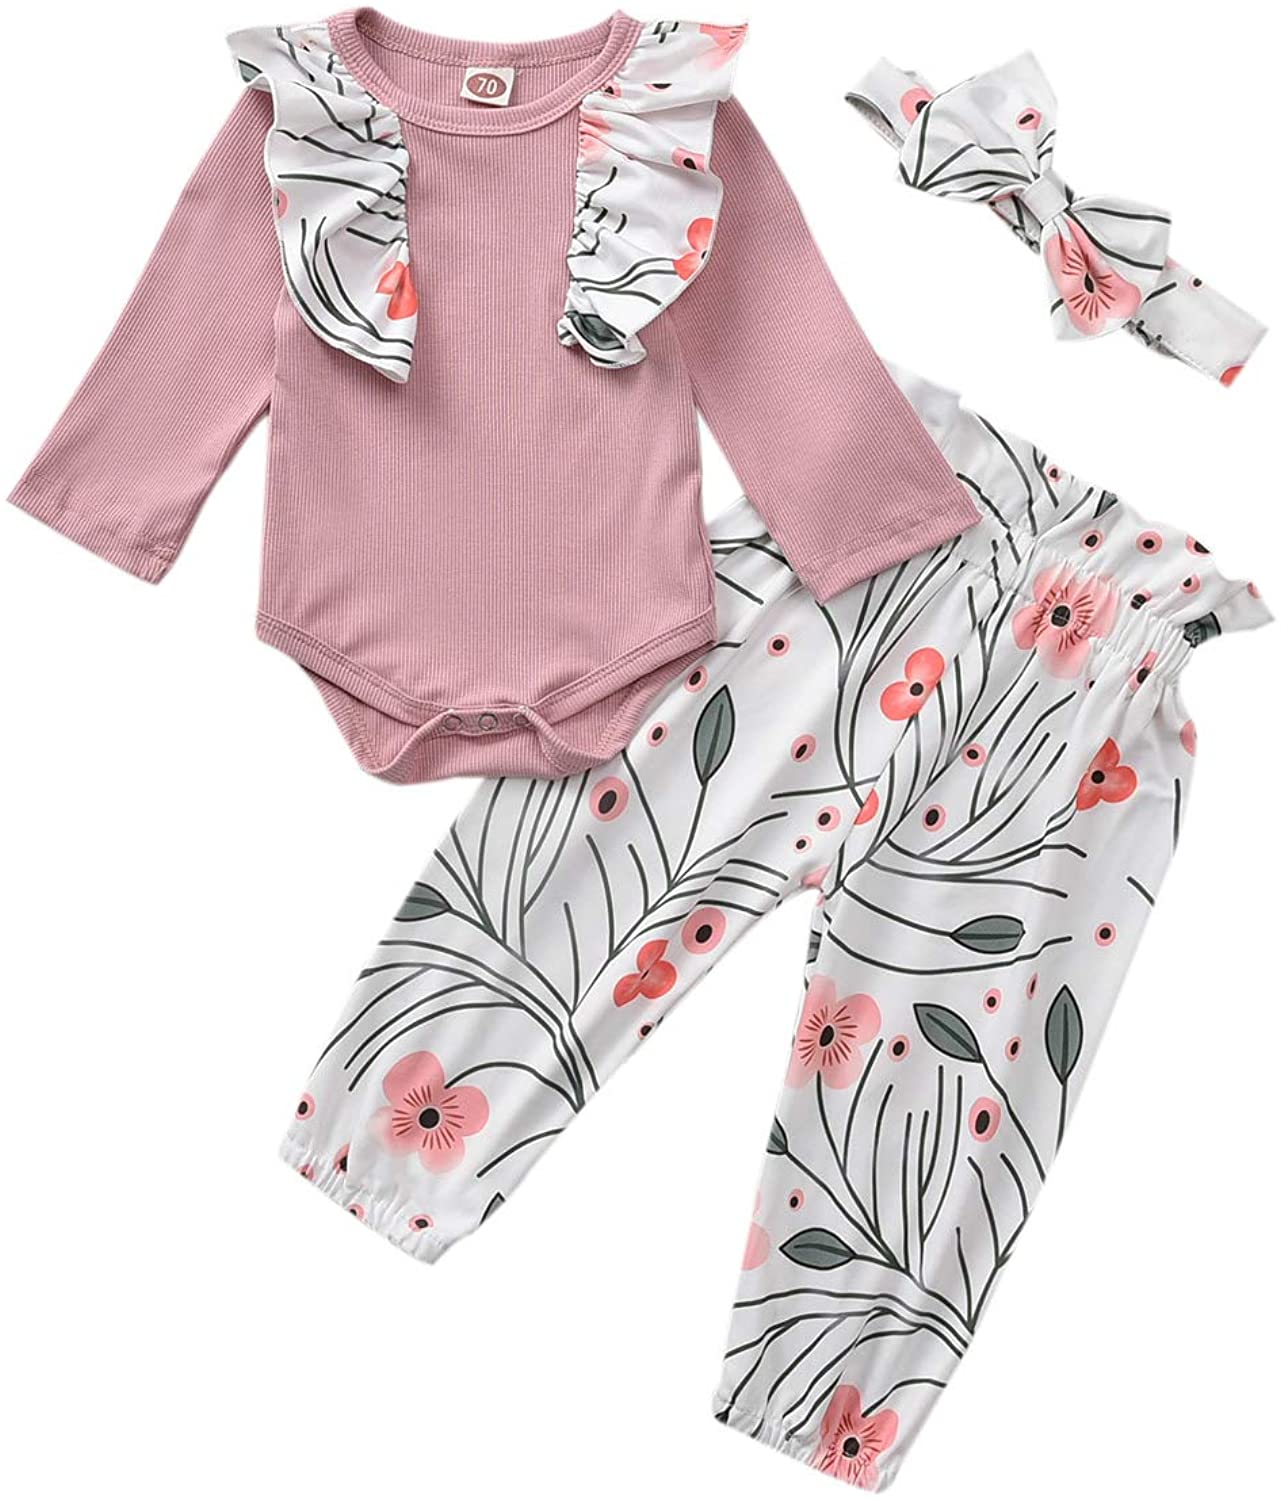 3PCS Baby Girls Long Sleeve Flowers Tops and Pants Outfit Ruffle Romper Bodysuit Floral Halen Pants Headband Outfits